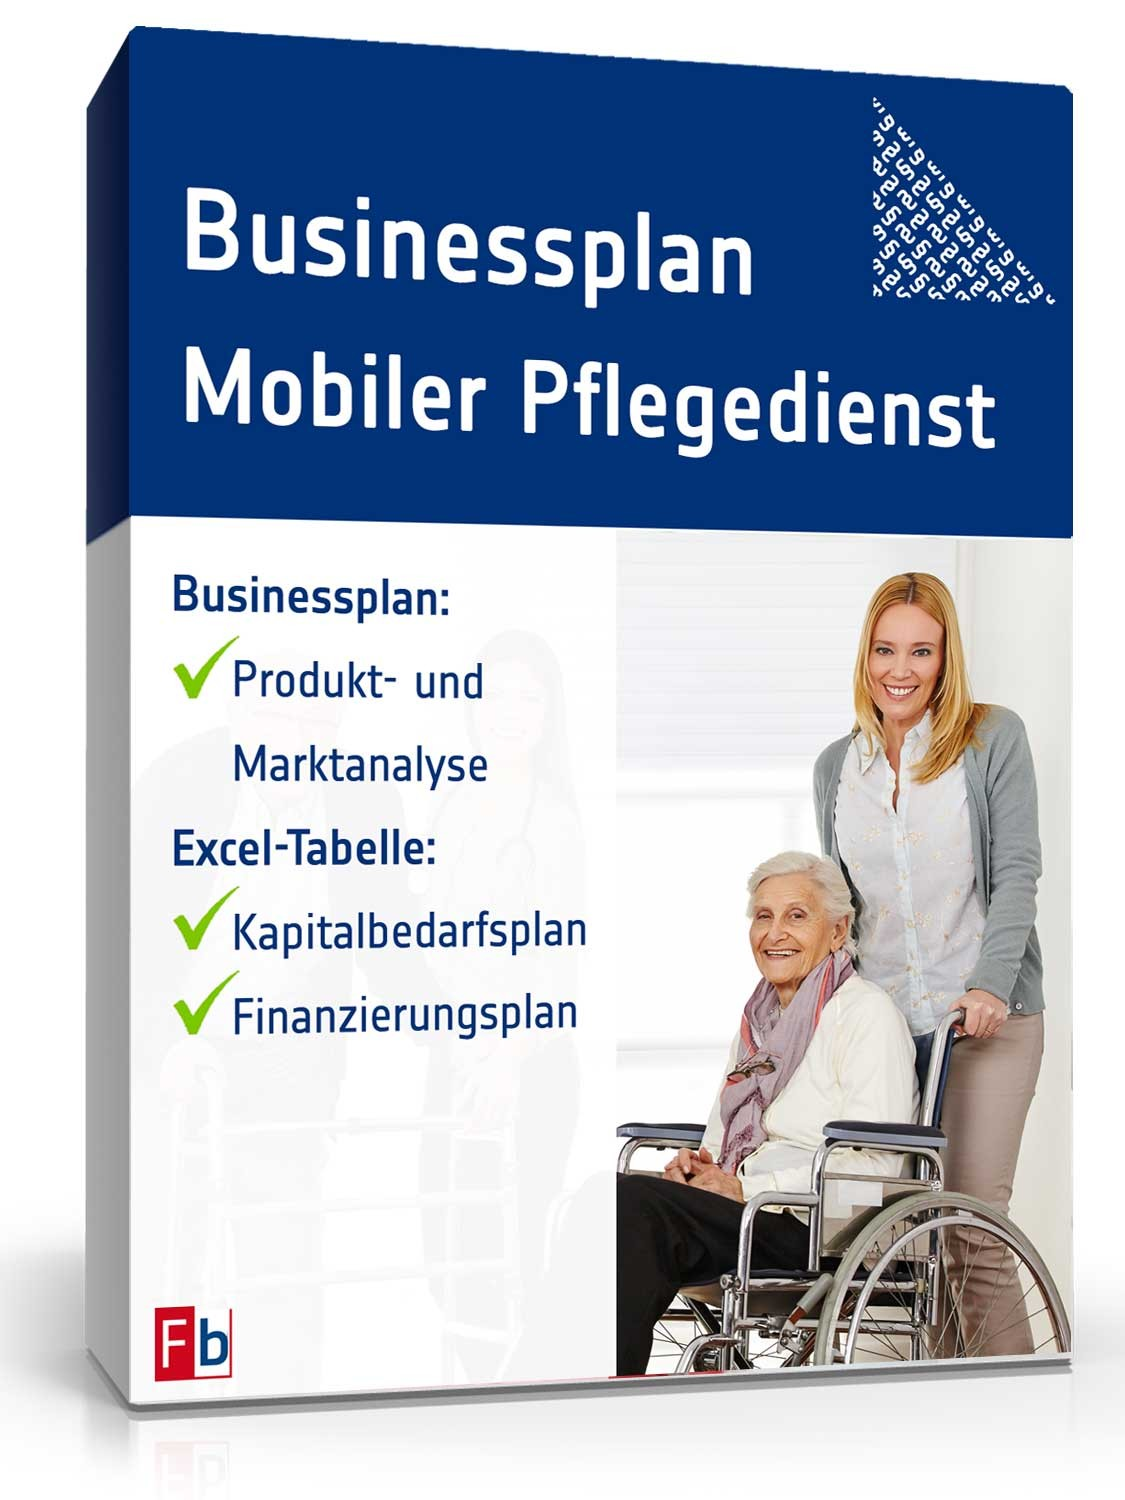 Businessplan Mobiler Pflegedienst